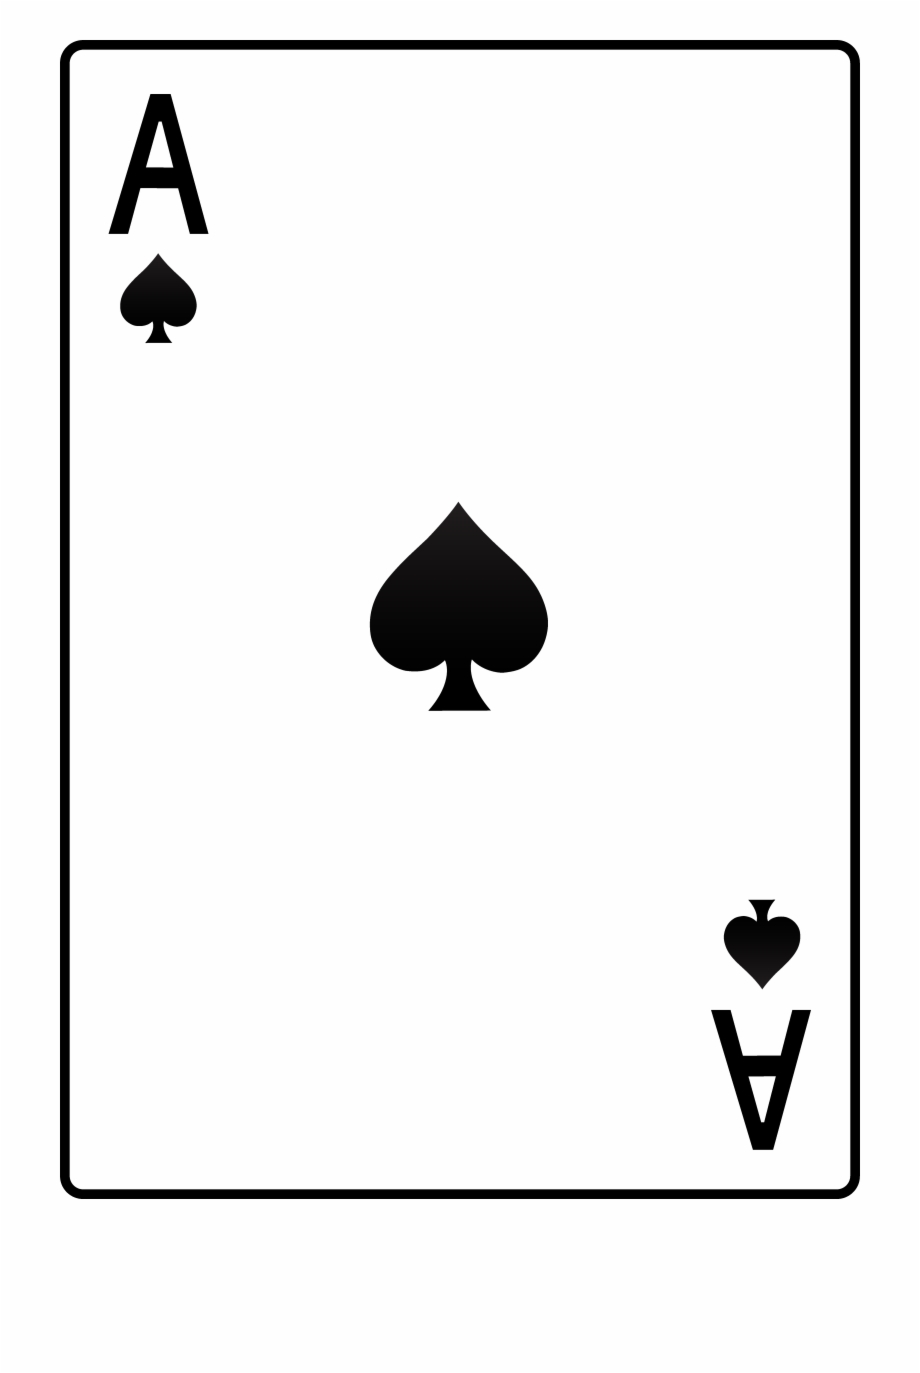 Ace Card Png File Ace Playing Card Png.